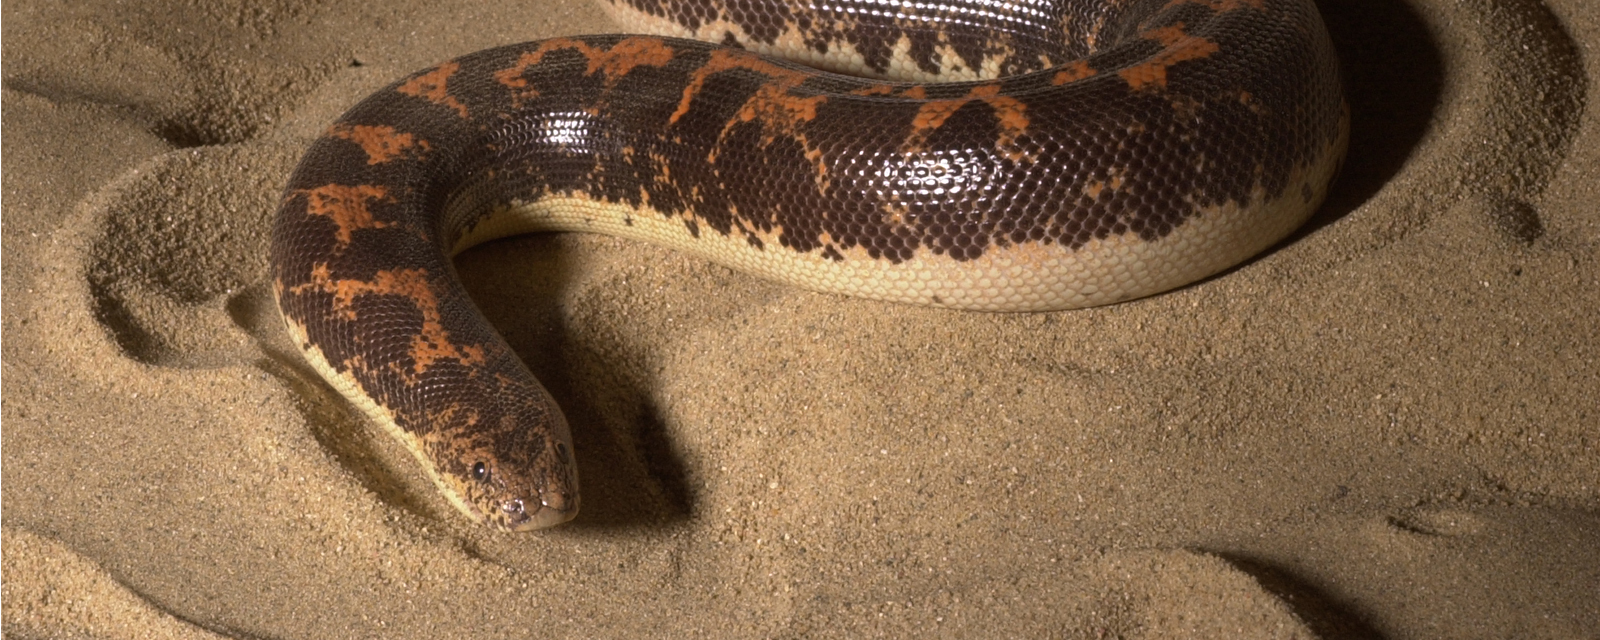 Kenya sand boa in exhibit